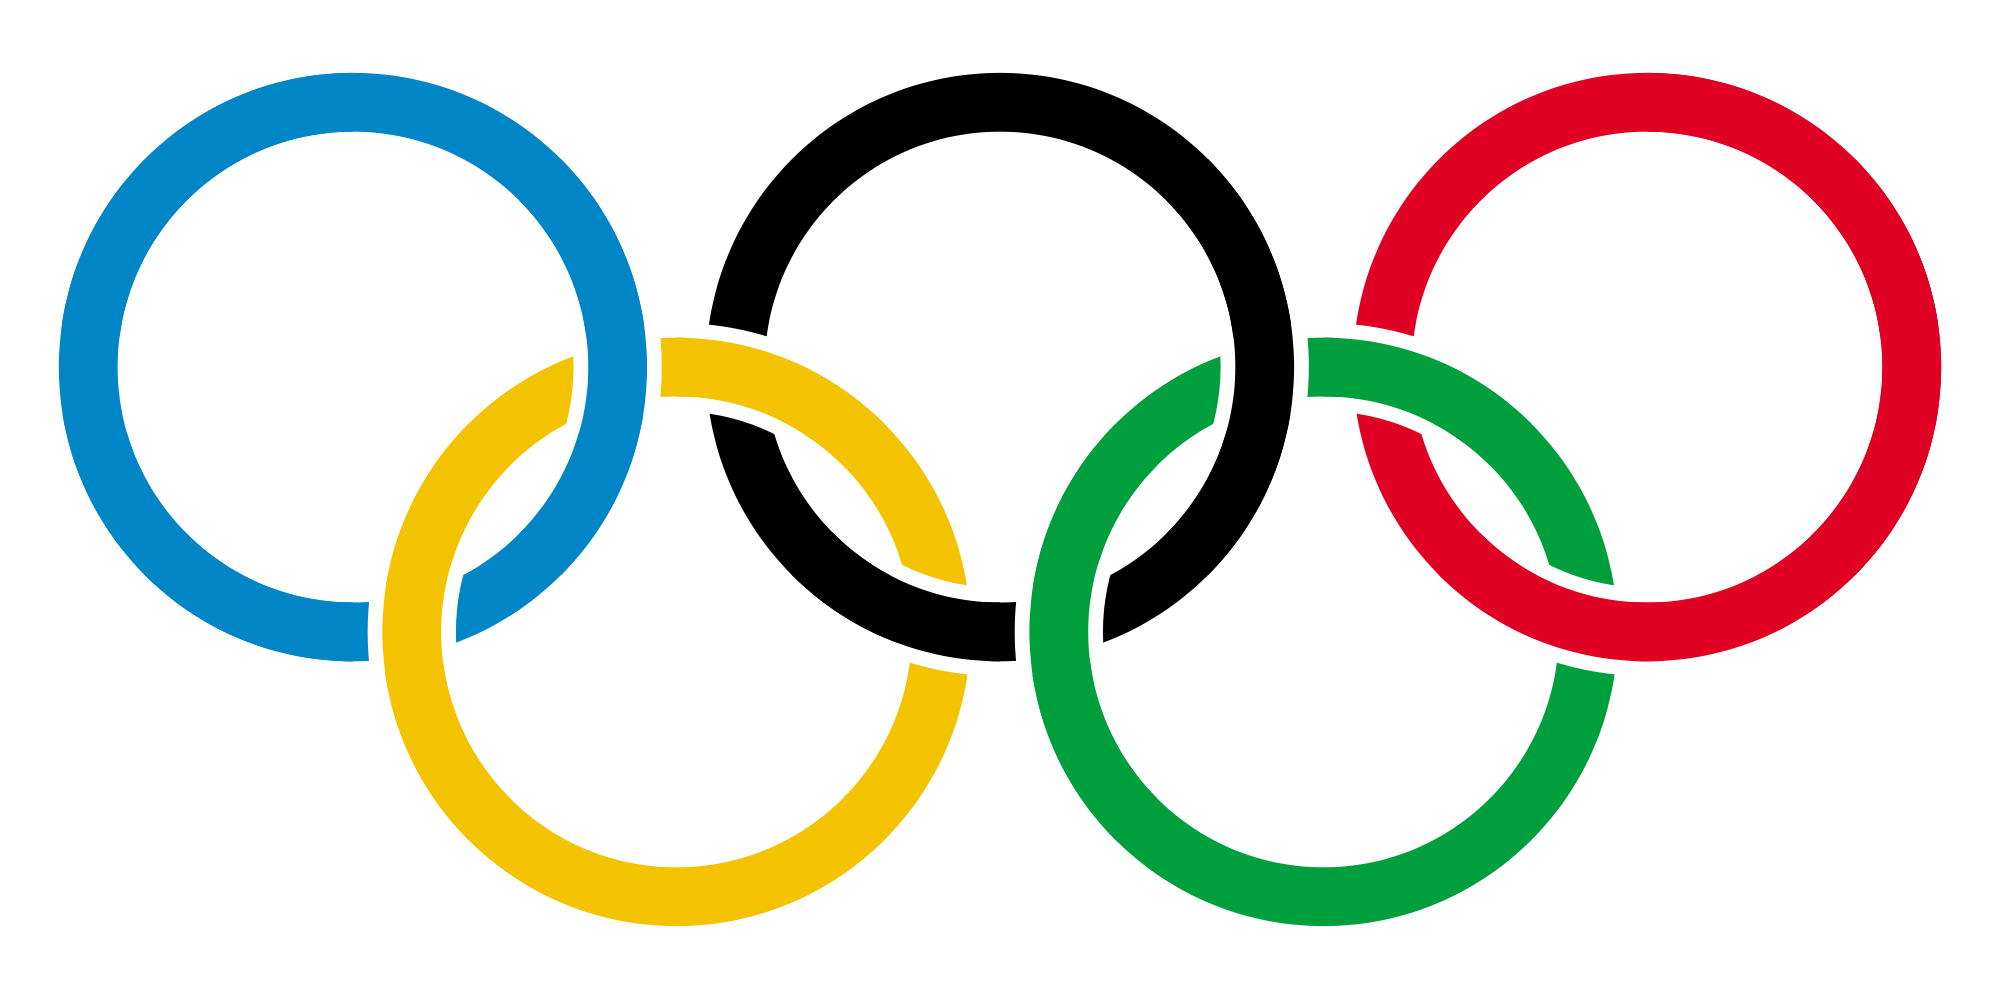 Uncategorized Olympic Symbol 45 olympic logos and symbols from 1924 to 2022 colorlib 2022